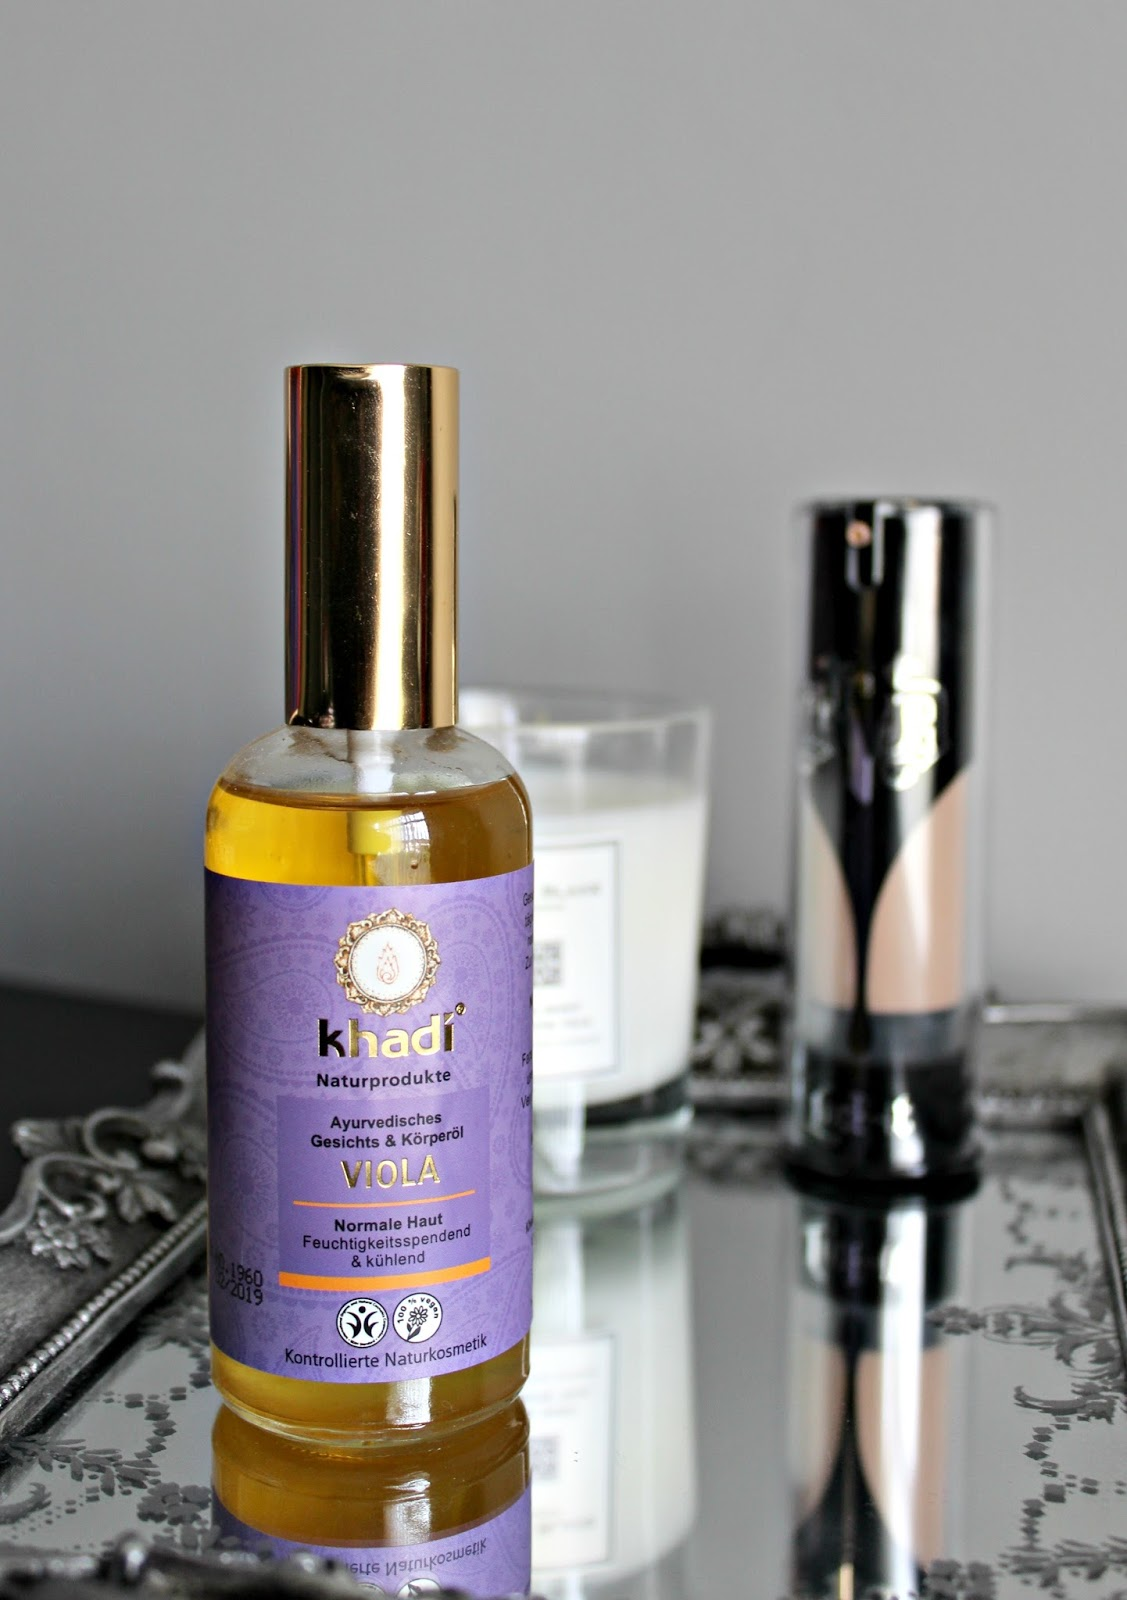 khadi Viola Face Oil Review